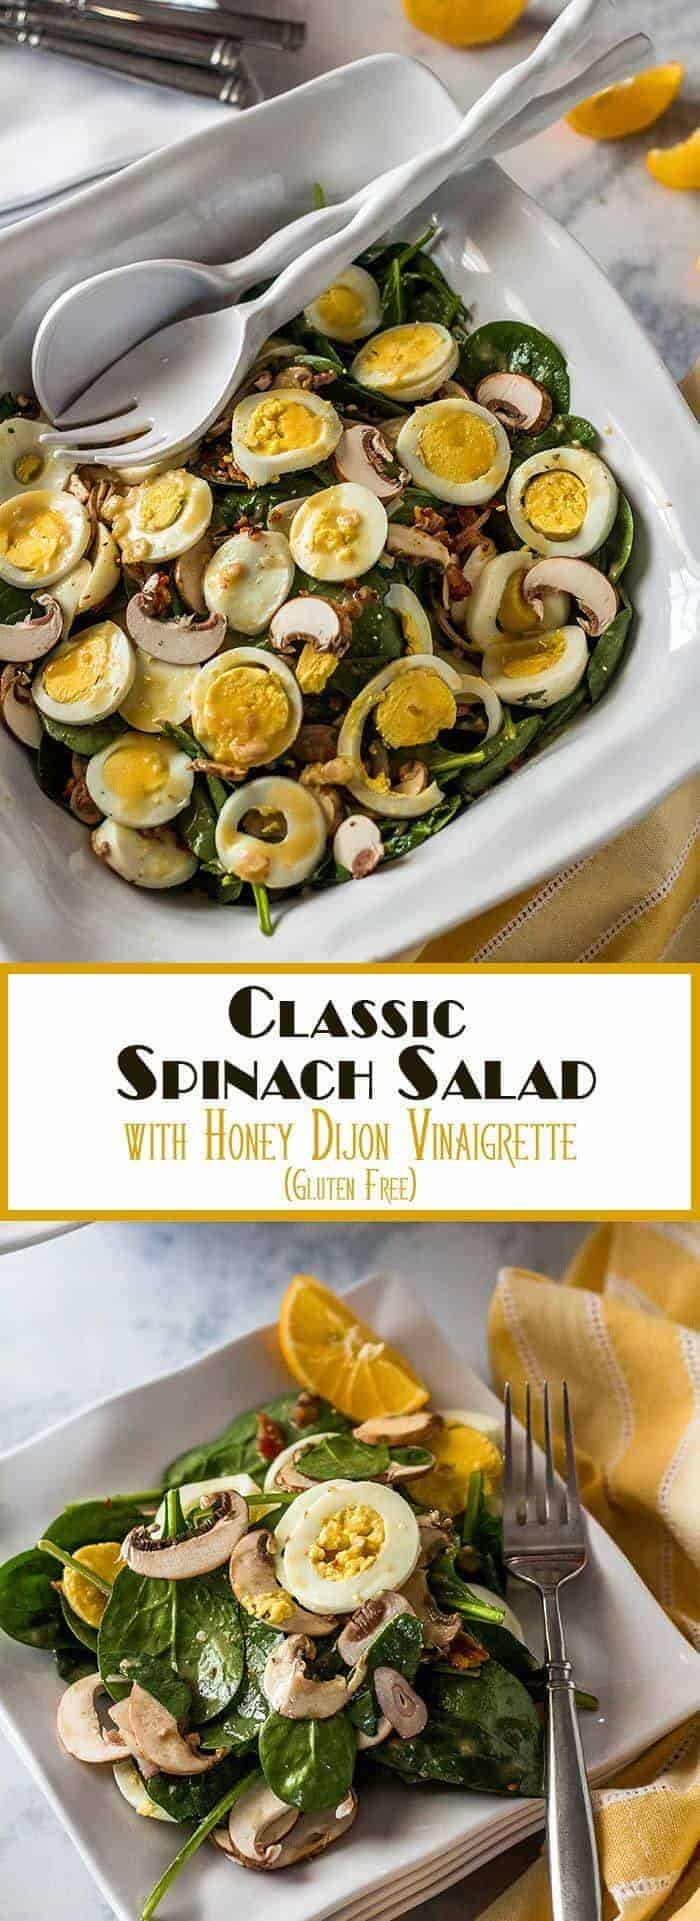 It's a classic, but it's not bland or boring... A Classic Spinach Salad with Honey Dijon Vinaigrette is nutrient and flavor packed with umami mushrooms, smoky bacon, and protein-rich hard-cooked egg. It's going to be perfect alongside that leg of lamb (or honey baked ham) on your #SundaySupper table! Sunday Supper | Easter Sides | Spinach Salads | Spring Holiday Sides | Classic Spinach Salad | Gluten Free Salads